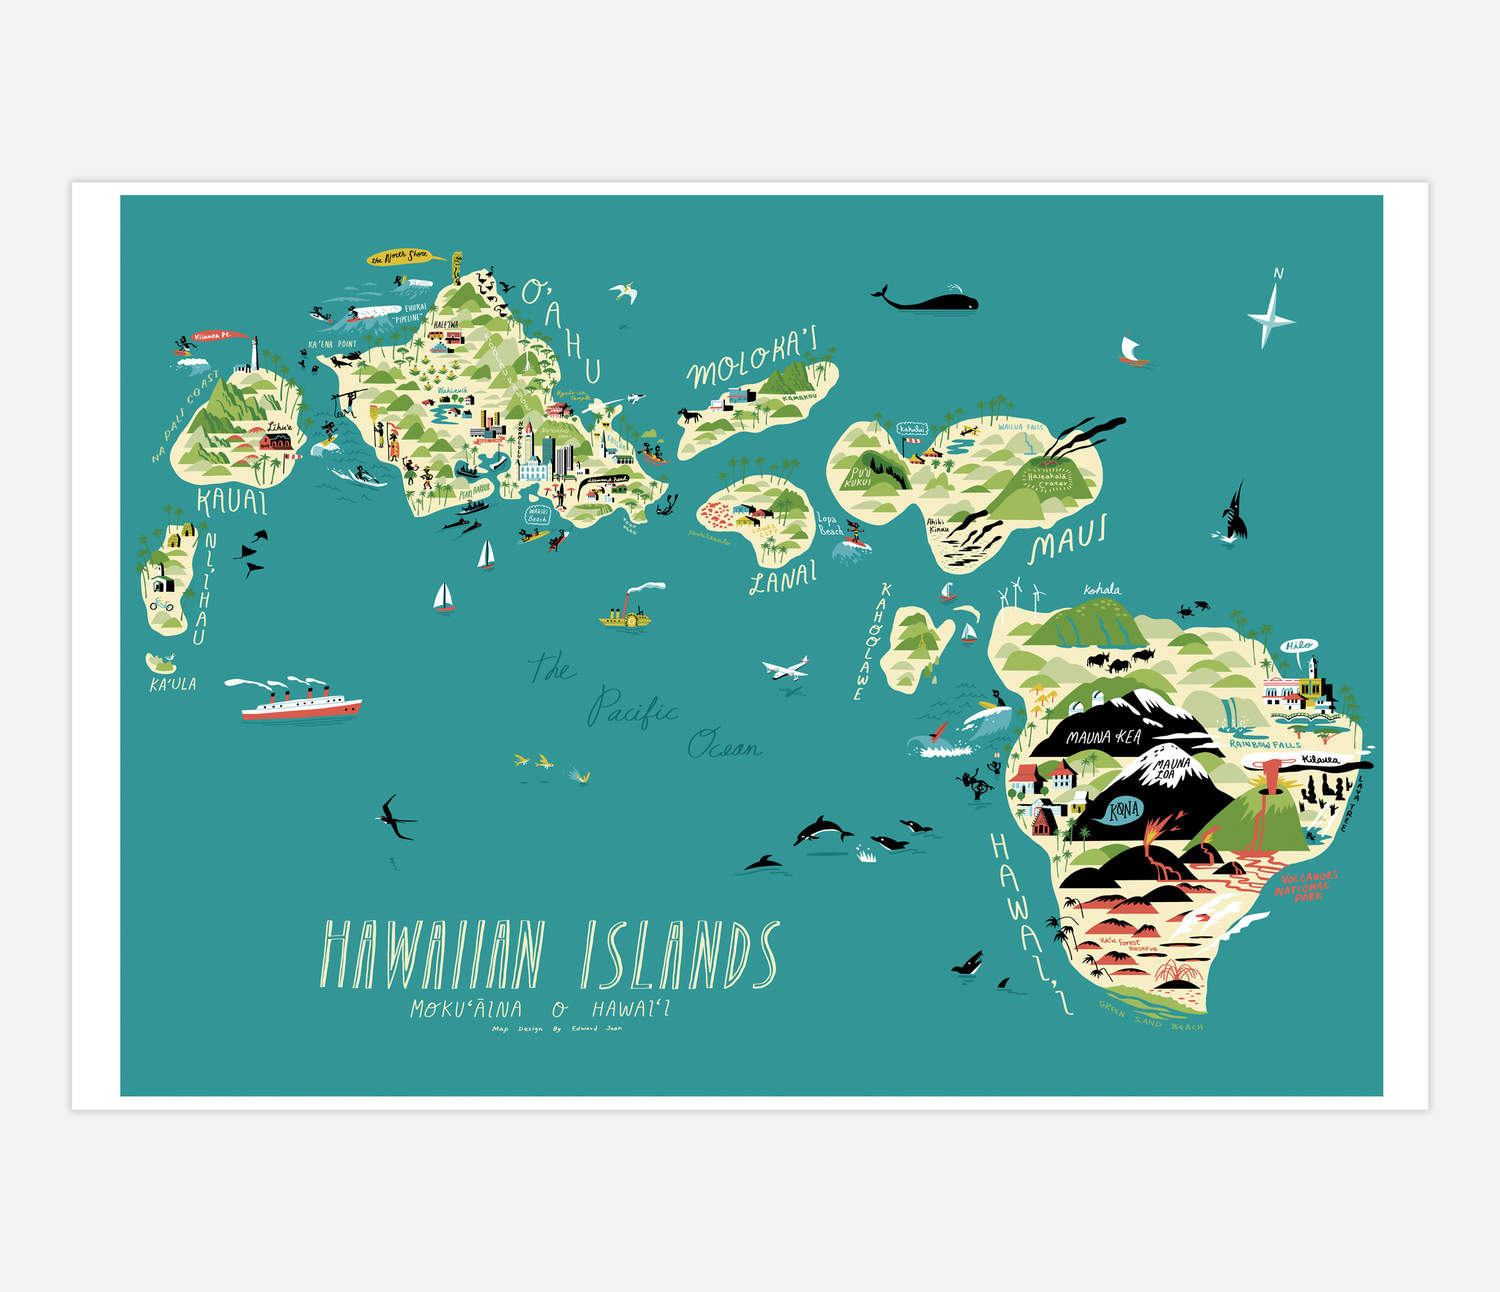 Hawaiian Islands on map of the grand canyon, map of arizona, map of michigan, map of philippines, map of hawaiian islands, map of americas, map of cleveland, map of north carolina, map of usa, map of illinois, map of waikiki, map of mexico, map of pearl harbor, map of italy, map of oahu, map of guam, map of florida, map of massachusetts, map of the panama canal, map of maine, map of texas, map of molokai, map of new jersey, map of maui, map of virginia, map of alaska, map of china, map of bahamas, map of kauai, map of canada, google maps hawaii, map of mauna loa, map of ohio, map of united states, map of georgia, map of delaware, map of new york, map of big island, map of california,